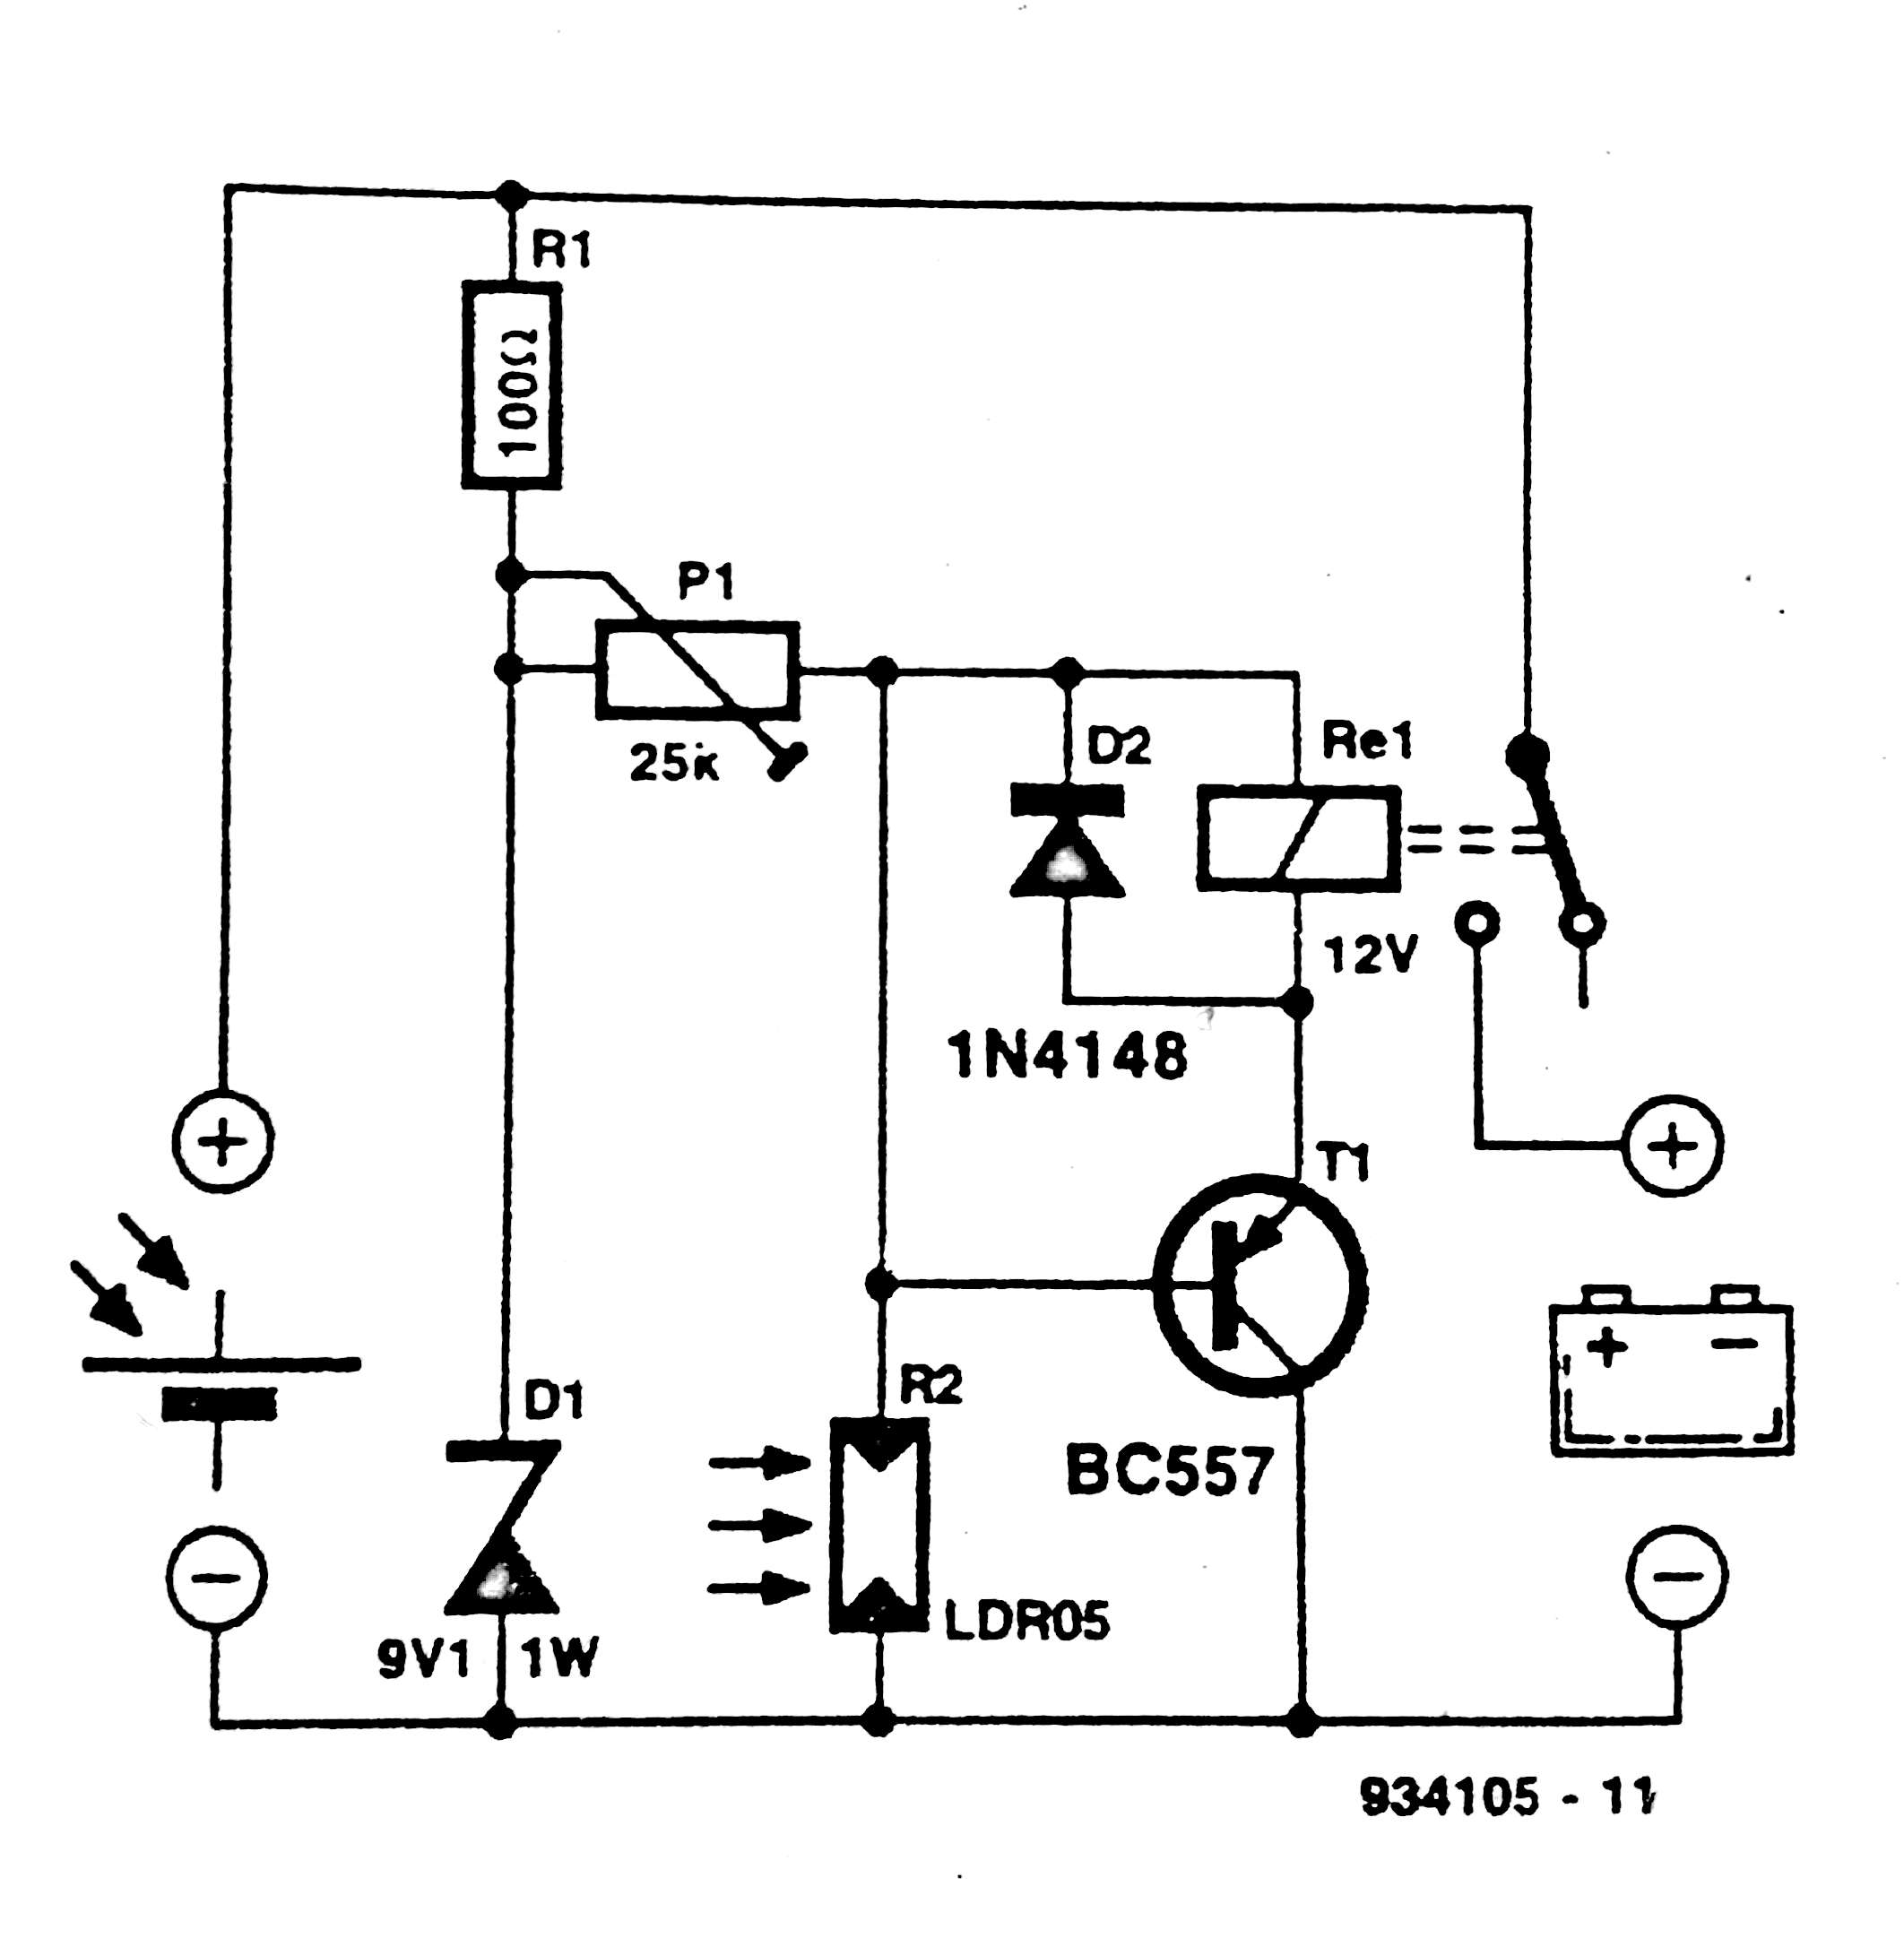 solar panel switch circuit diagram rh circuit diagramz com solar panel schematic diagram solar panel regulator circuit diagram